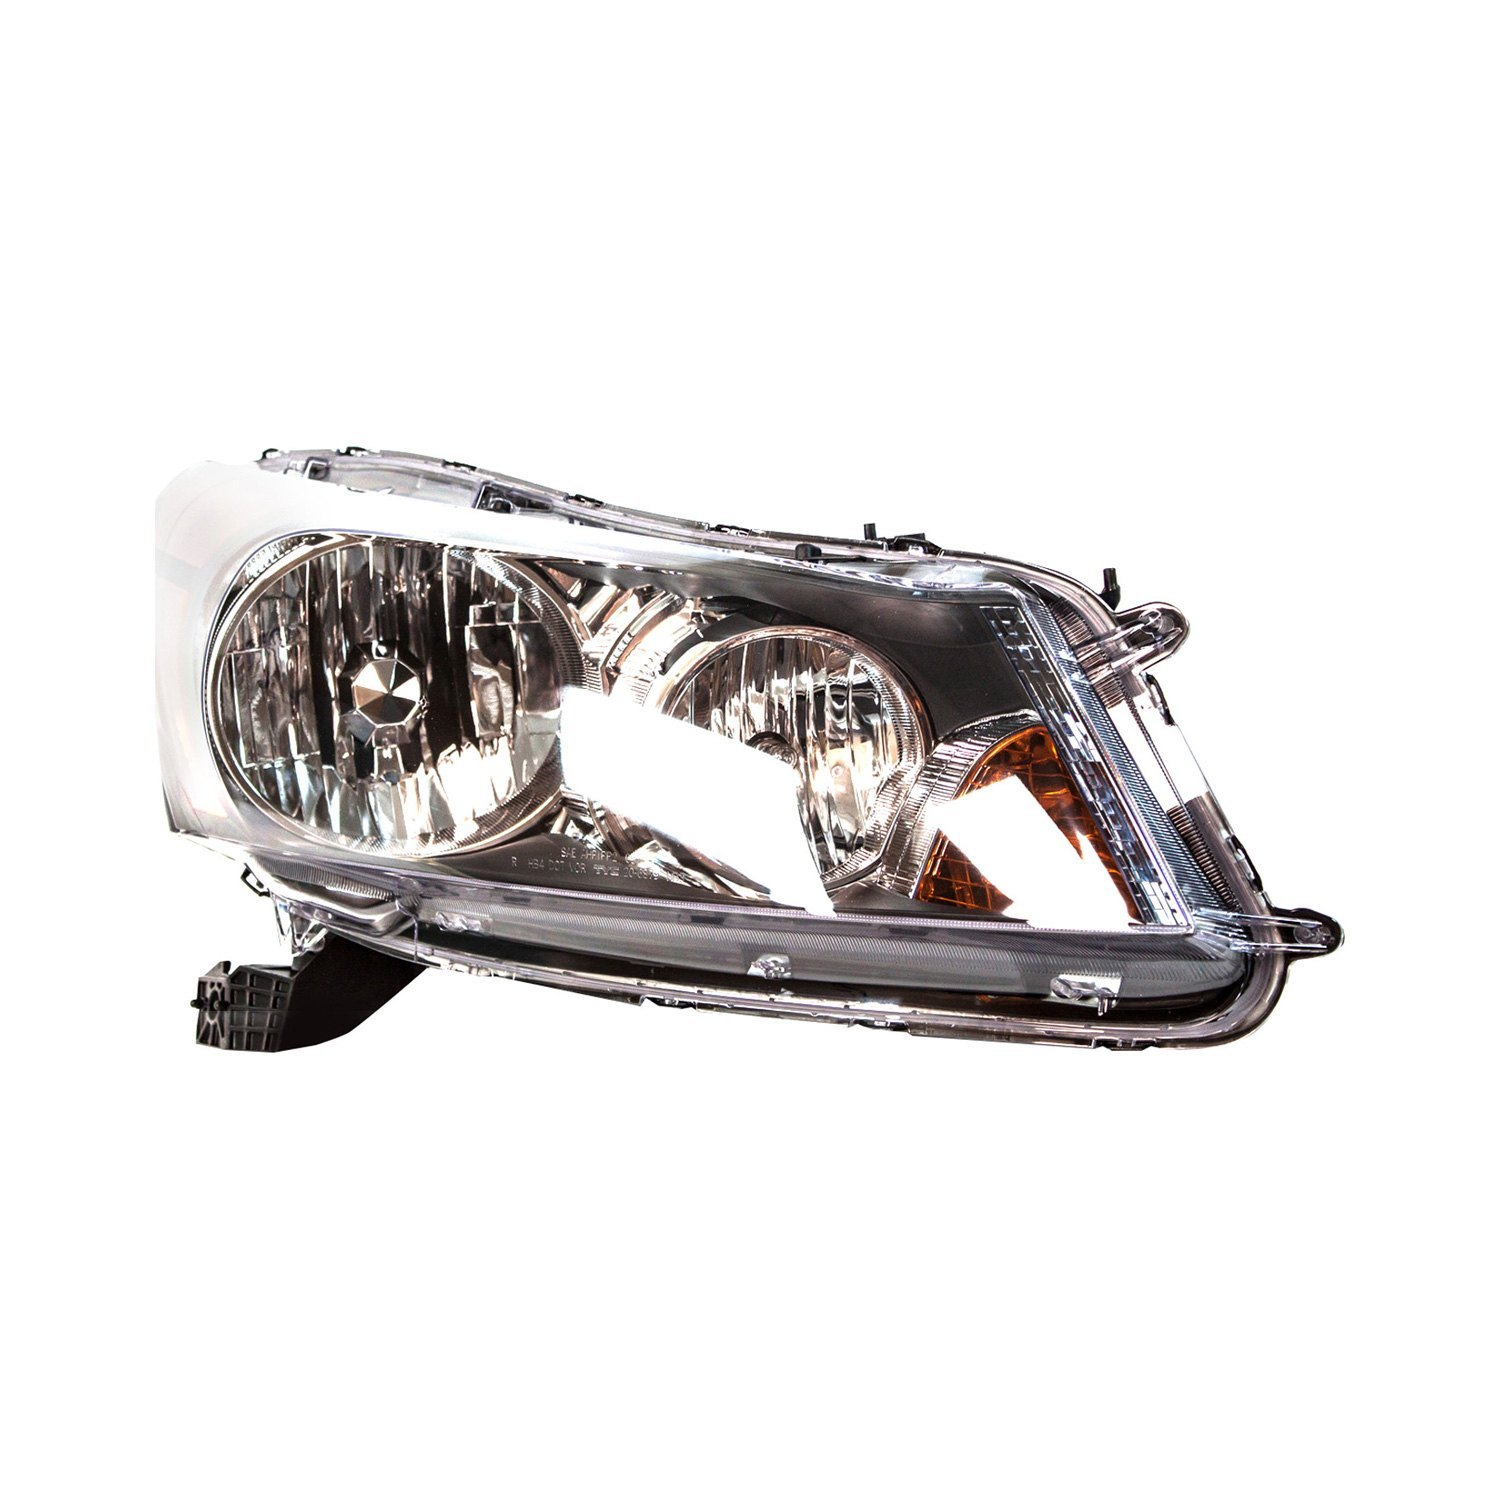 Tyc 174 Honda Accord 2011 Replacement Headlight